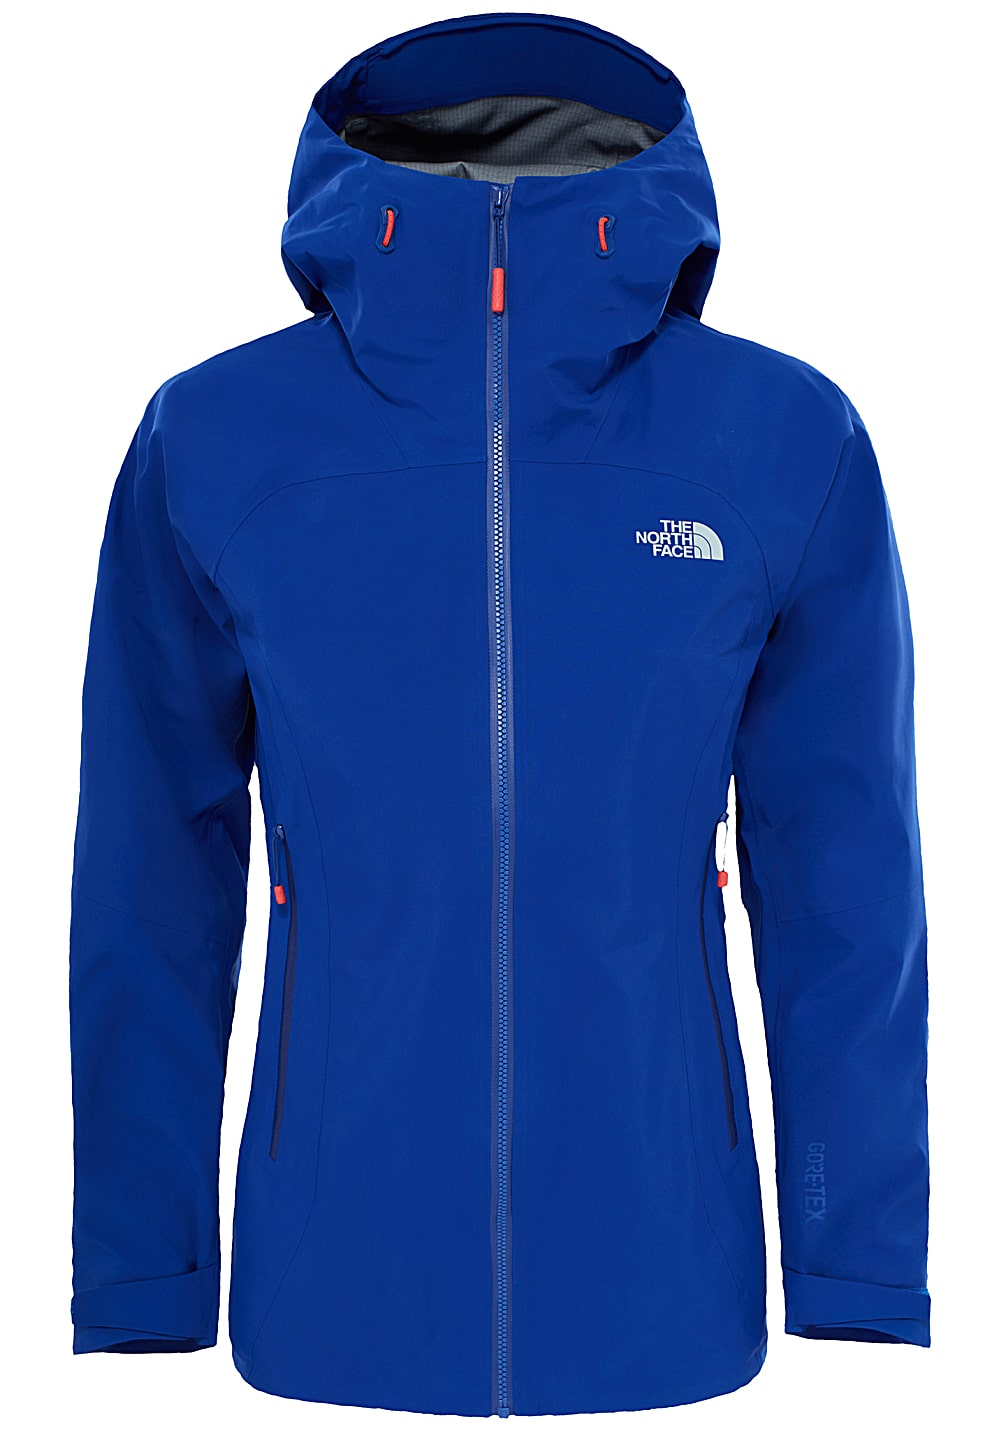 9323e55b2 THE NORTH FACE Point Five - Outdoor Jacket for Women - Blue